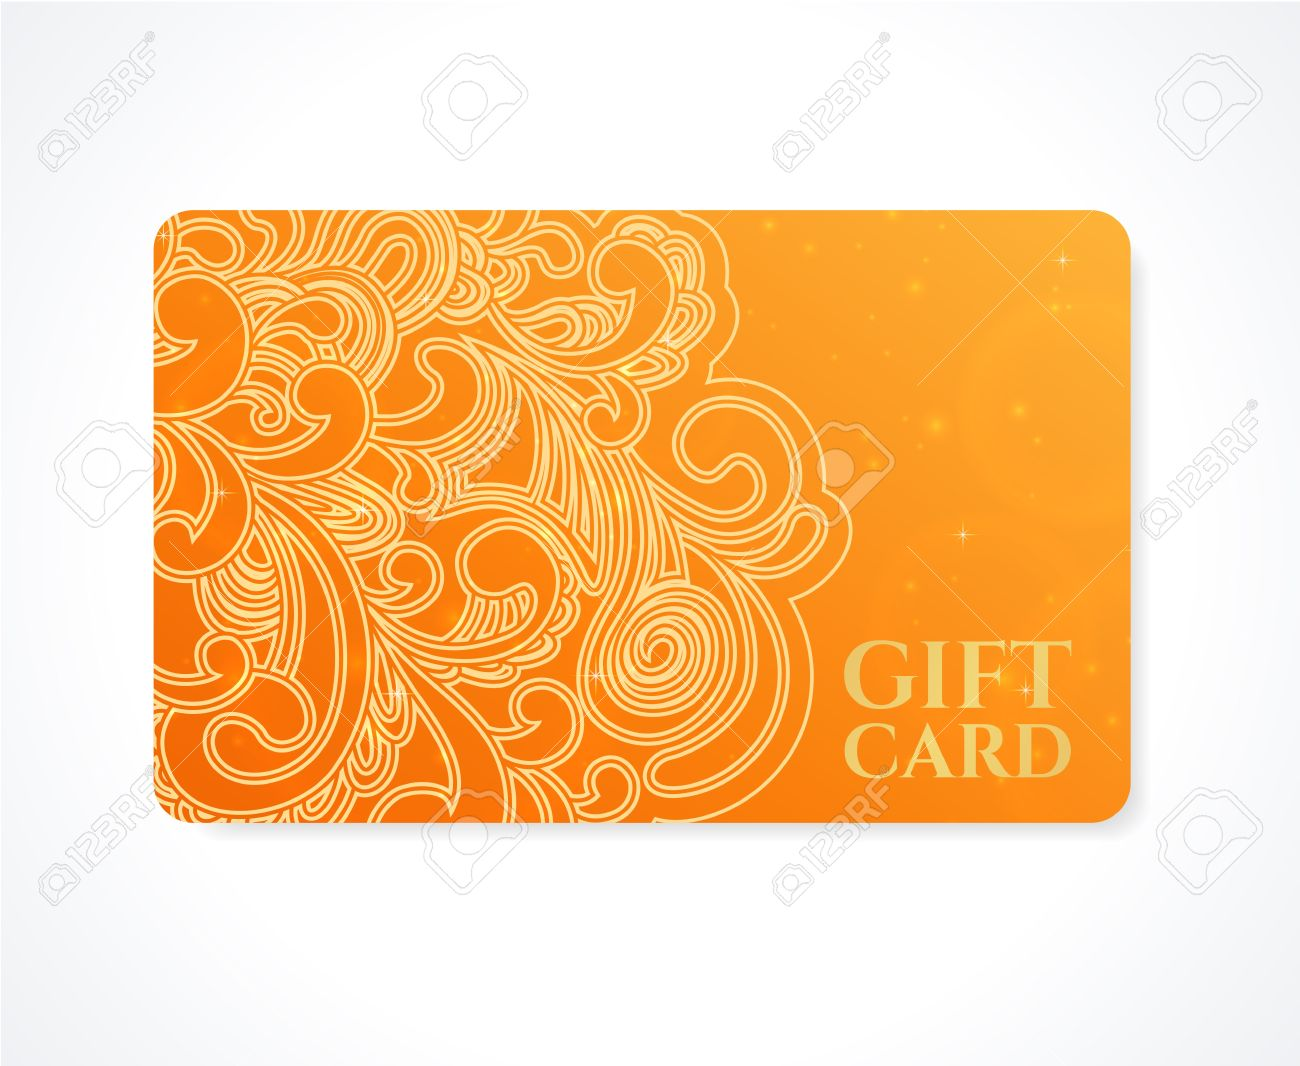 bright orange gift card business card discount card template bright orange gift card business card discount card template floral scroll swirl